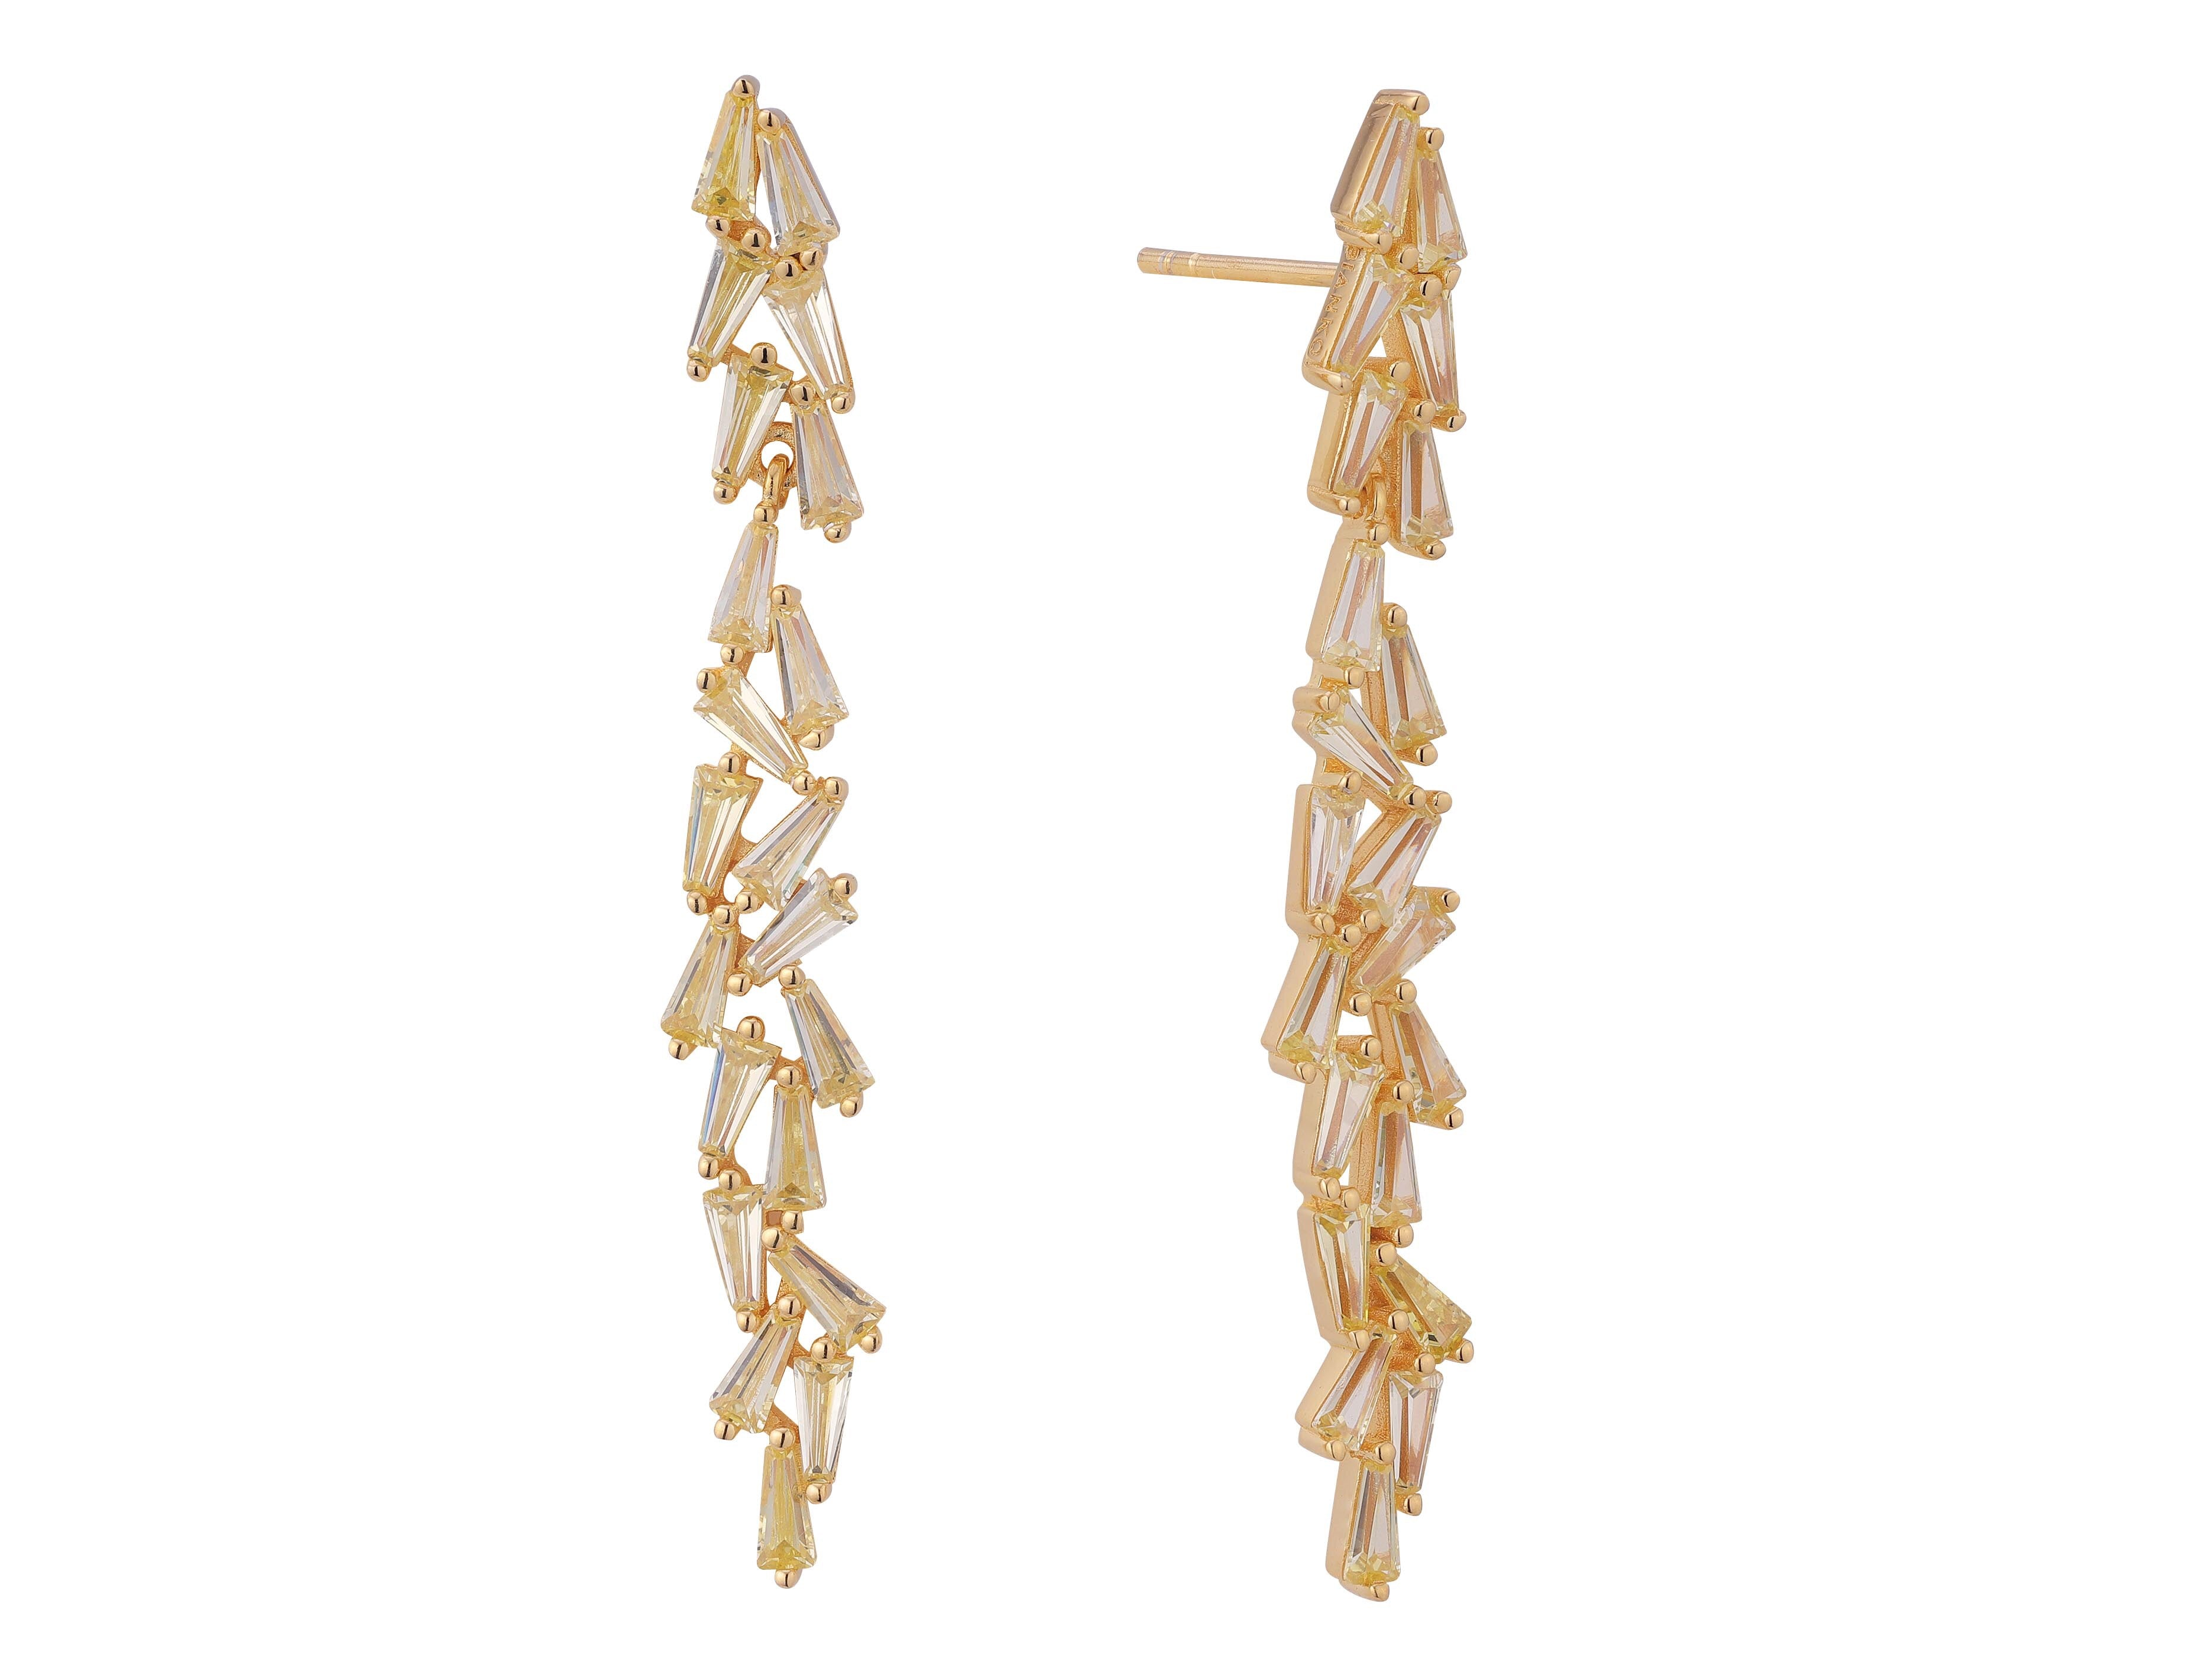 Product image of our aurora earrings crafted from Sterling silver, plated in 18 carat yellow gold (vermeil) and set with 21 trapeze cut yellow zircon gemstones.